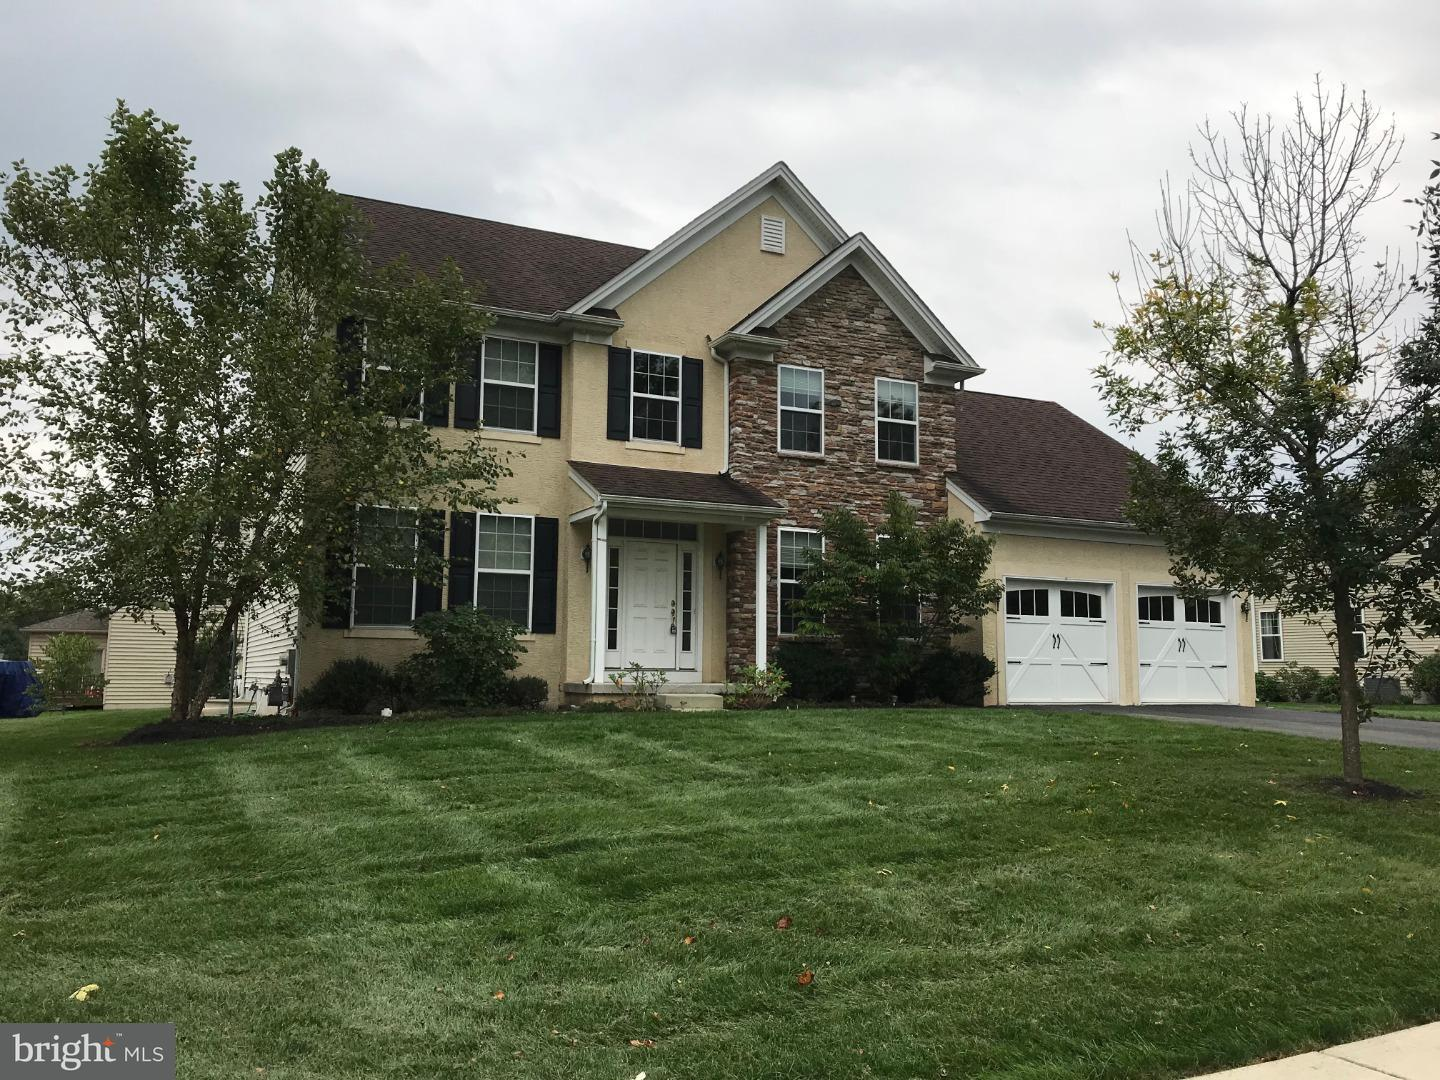 105 CLAYMONT DR, COLLEGEVILLE - Listed at $475,000, COLLEGEVILLE